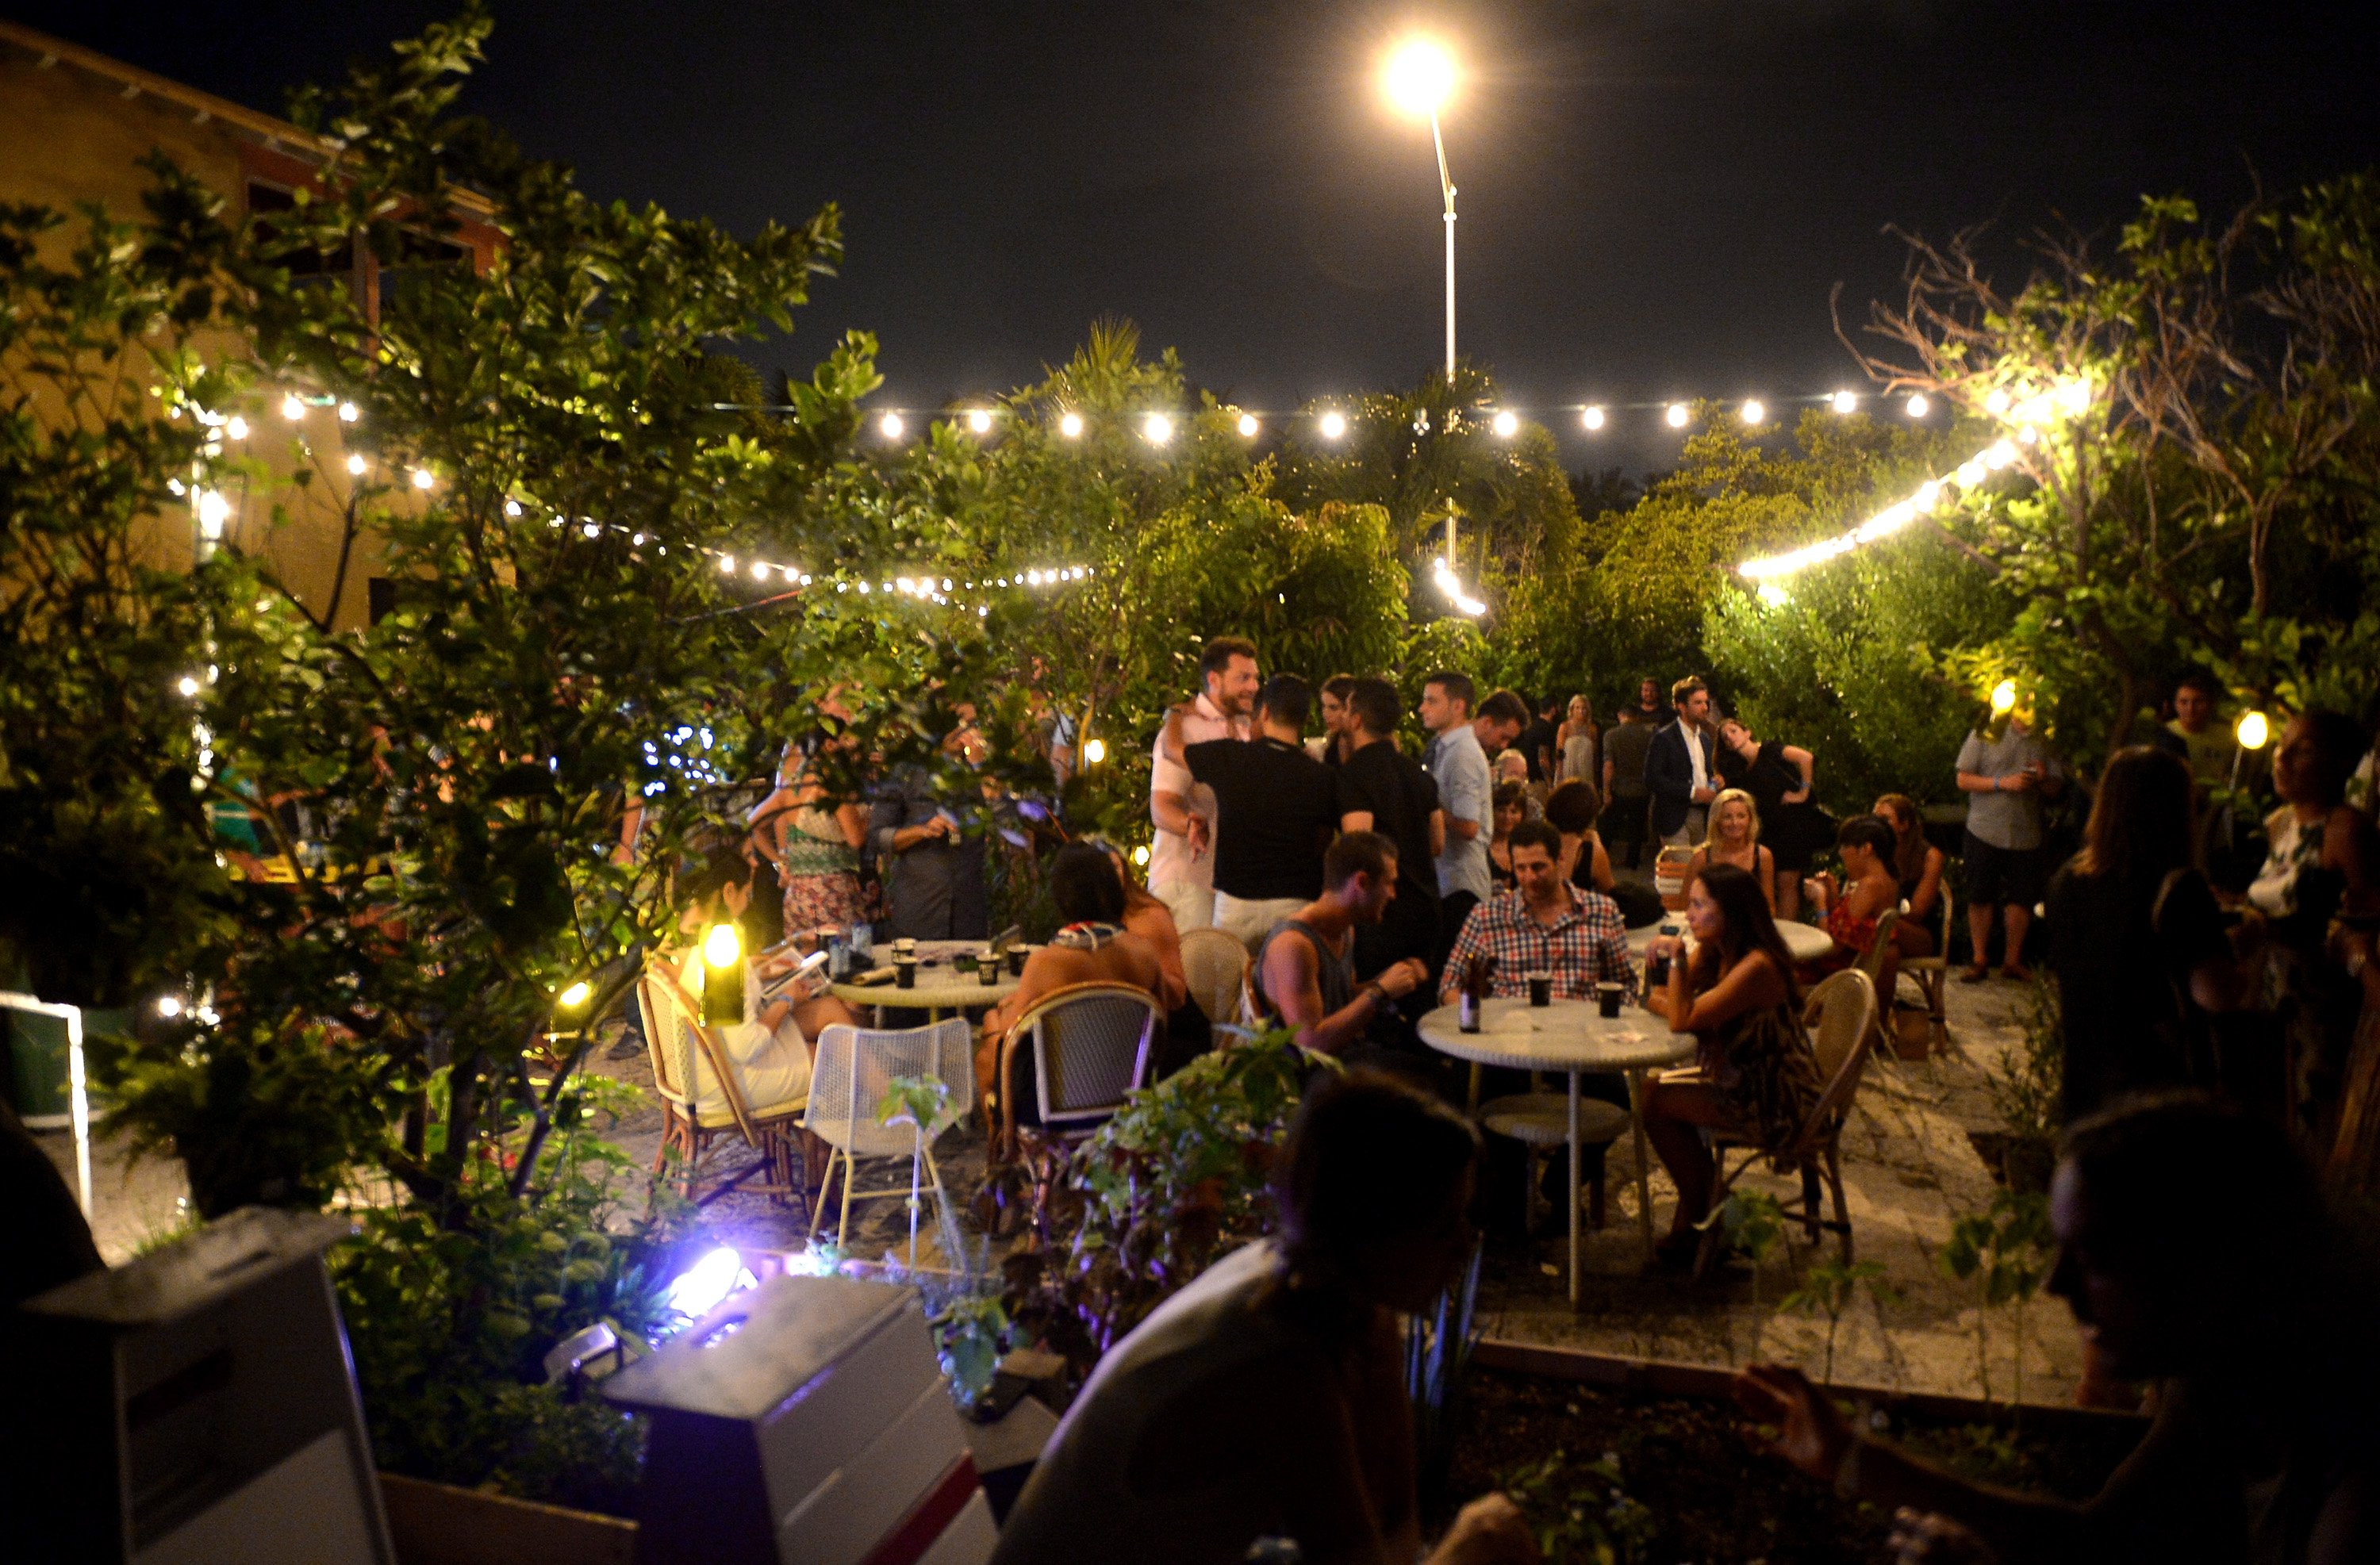 people at a rooftop party with string lights